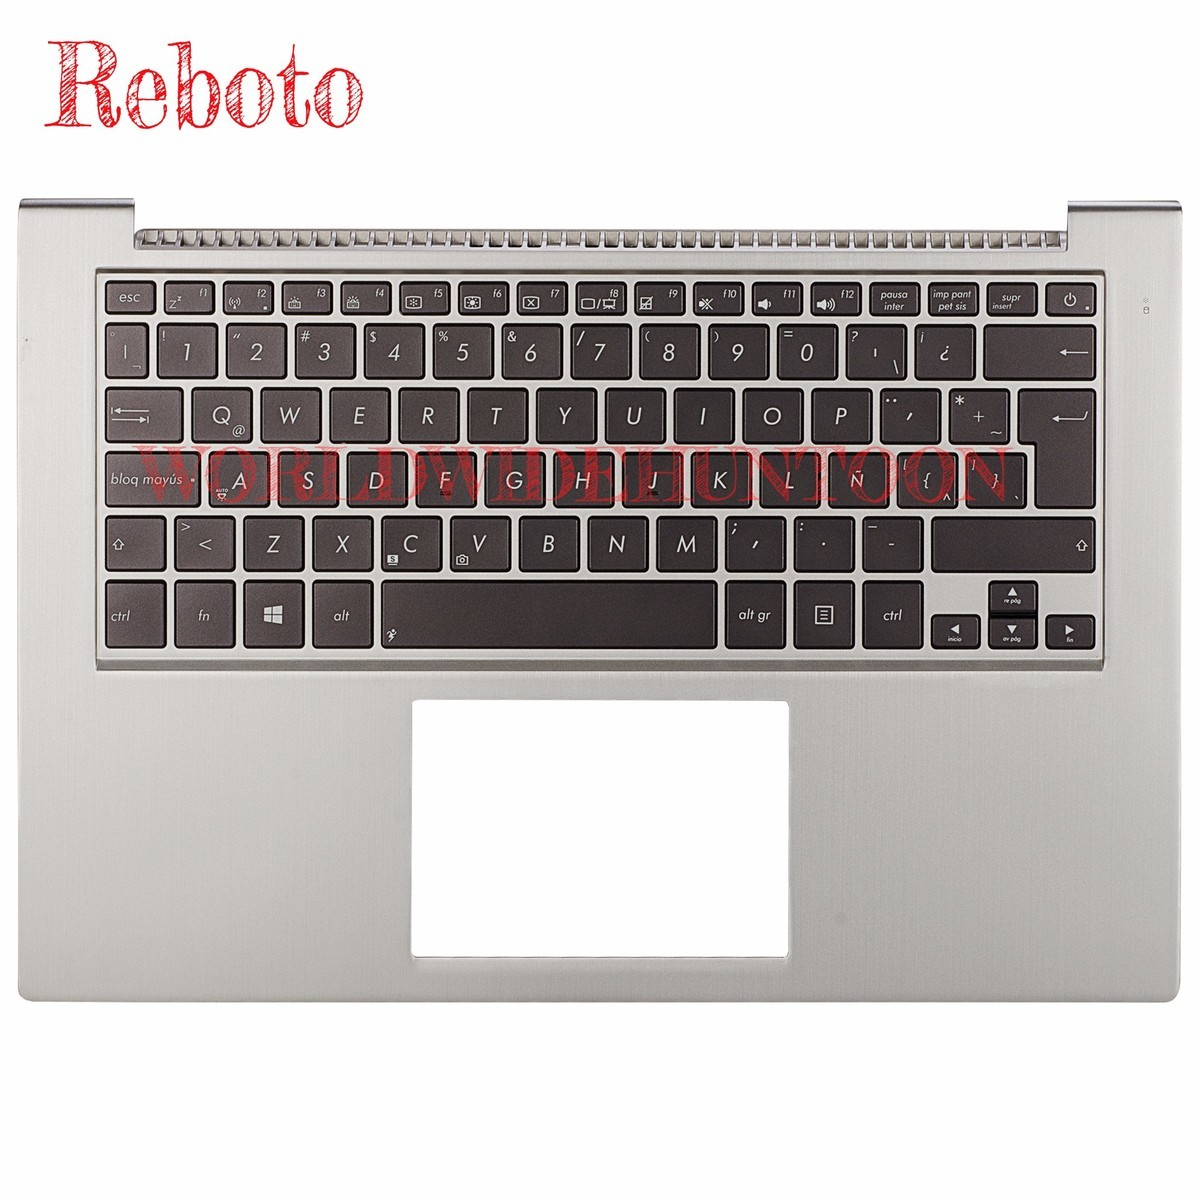 Reboto 100% Original and Brand New Spanish standard Laptop Keyboard for ASUS UX32E UX32VD SP Layout With backlit Palm rest new notebook laptop keyboard for asus mp 06913us 5281 k012462a1 sp layout